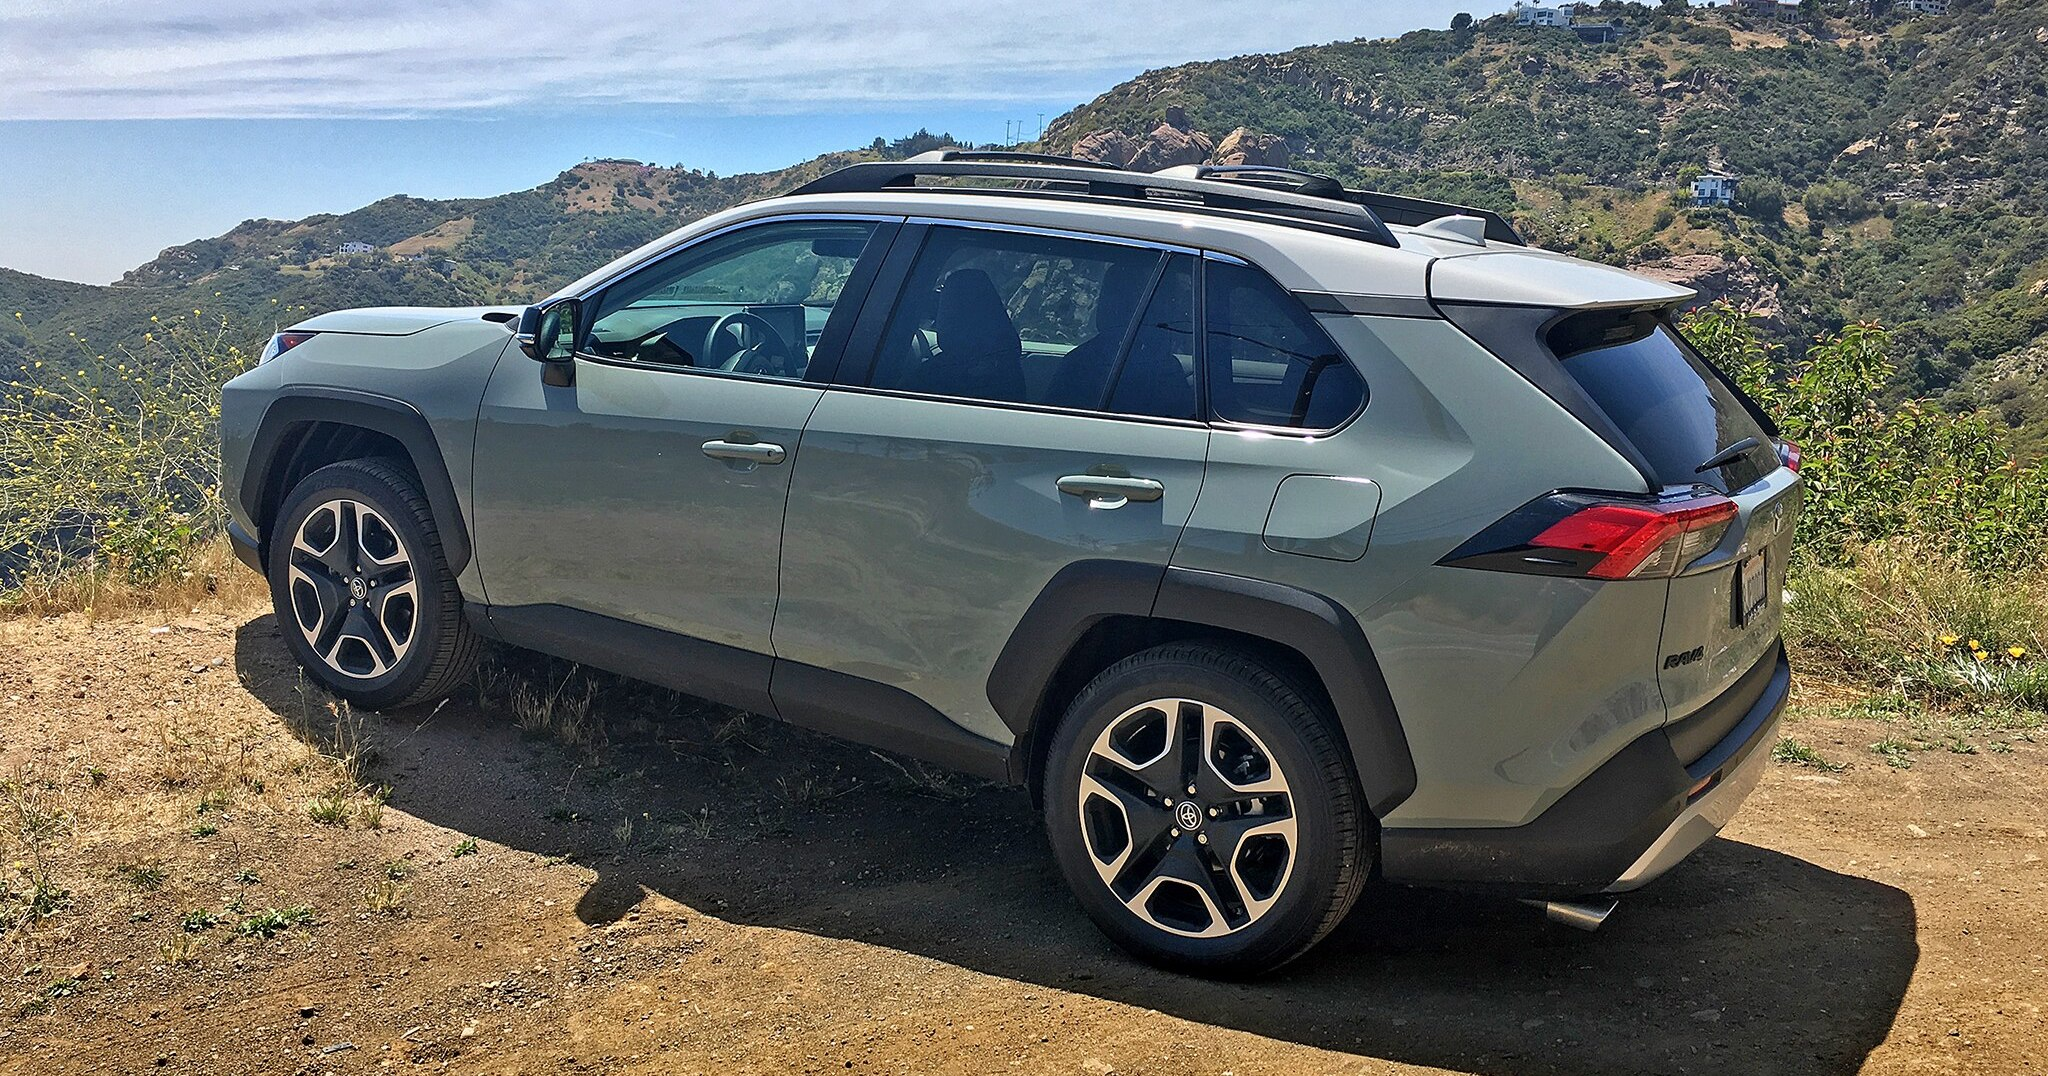 2019 Toyota RAV4 Adventure Review: Worthy Of Taking One